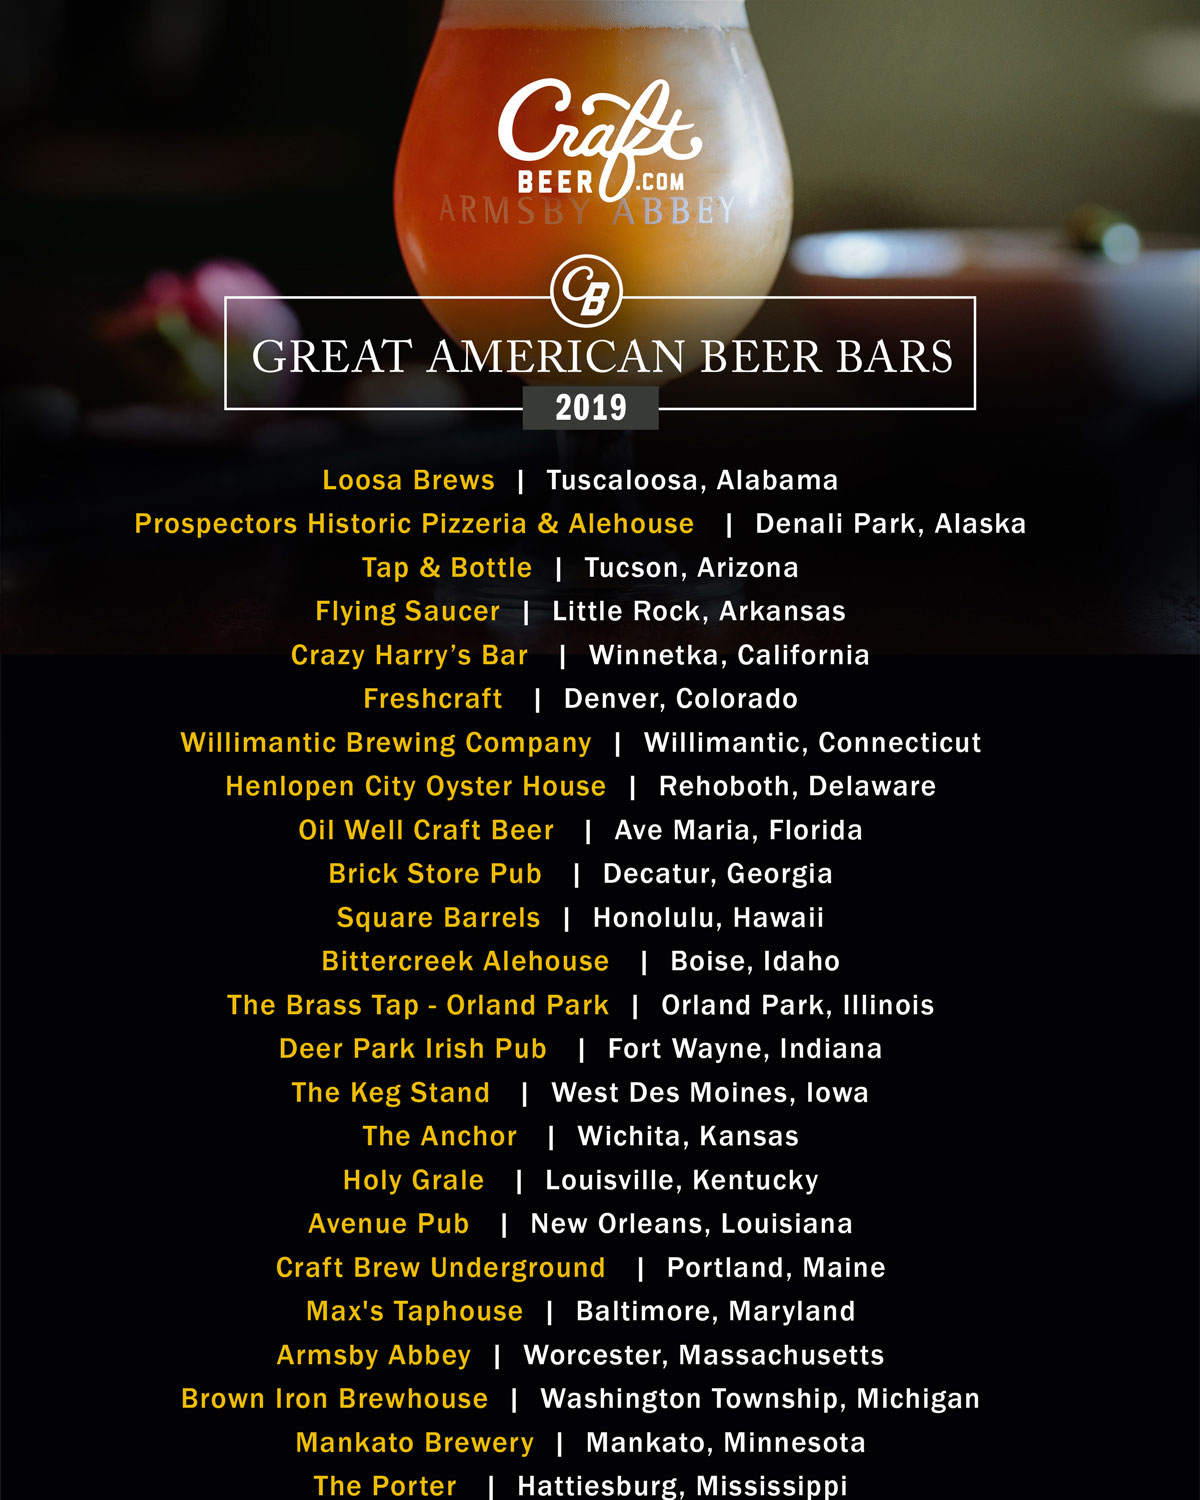 Great-American-Beer-Bars-1-VT-BLOG0319.jpg